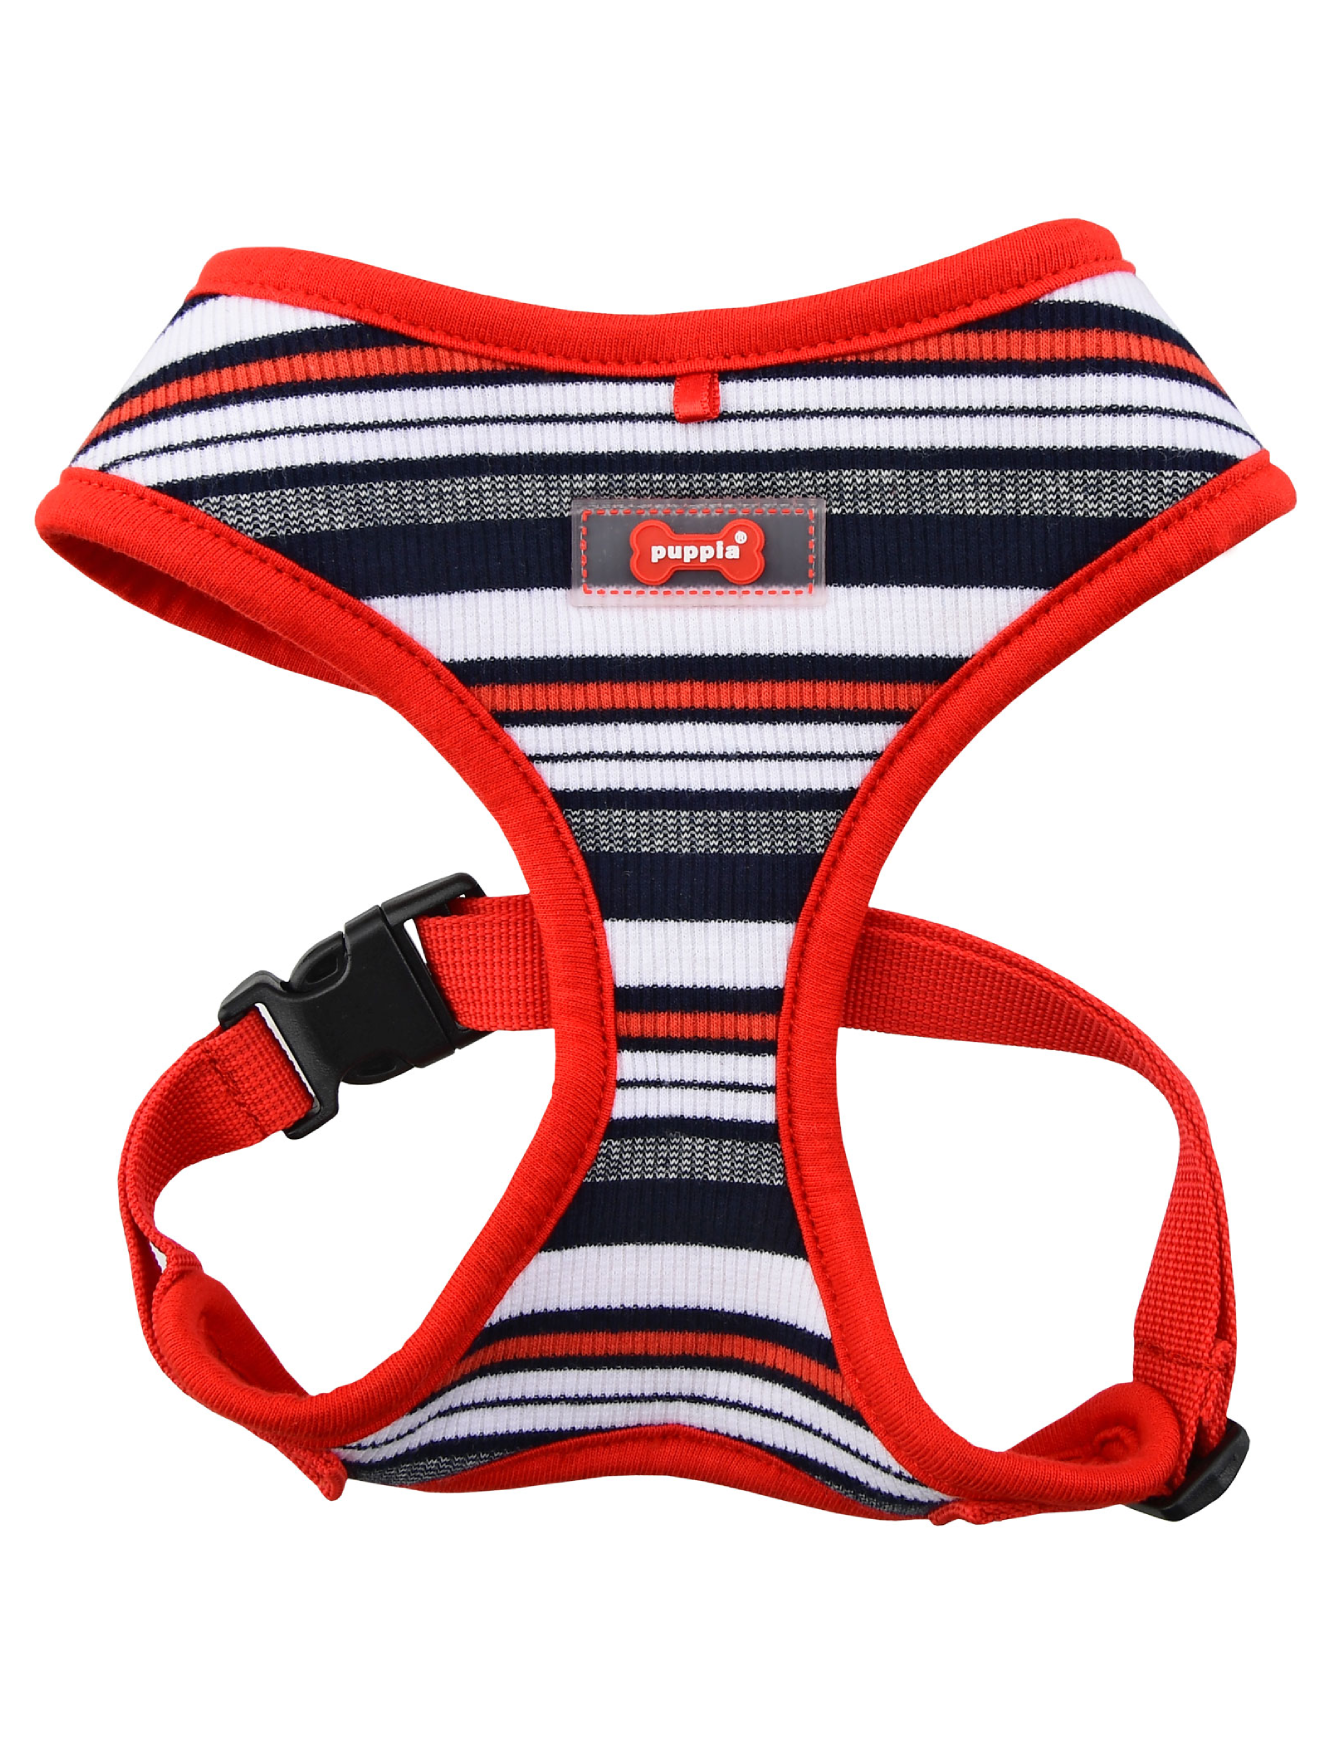 Puppia Red Oceane Harness for Dogs (4 Sizes) | Perromart Online Pet Store Singapore